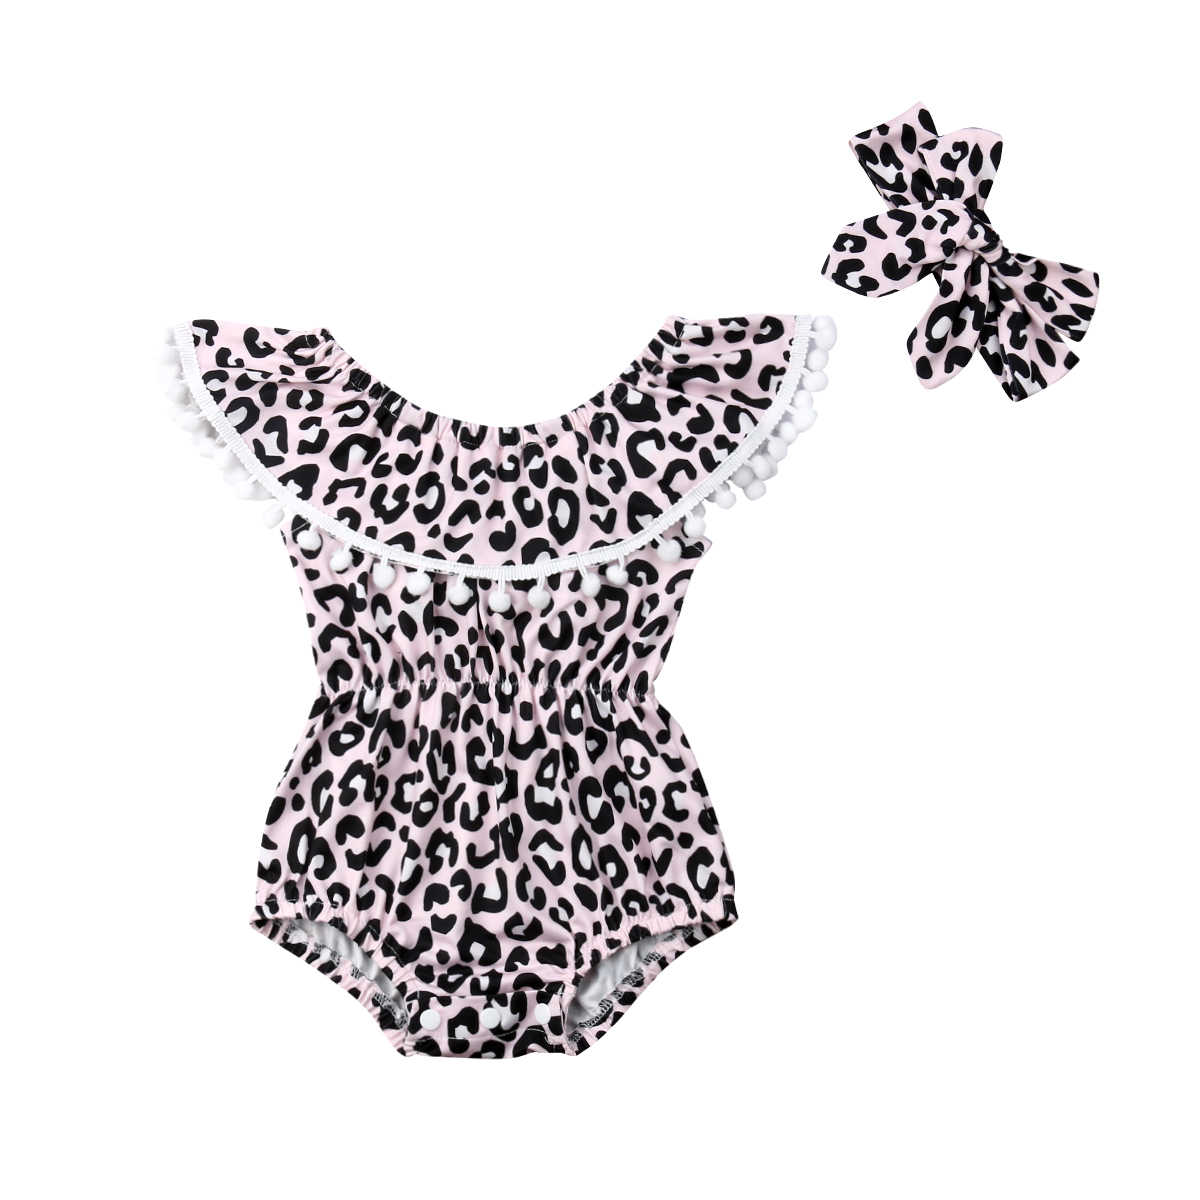 Fashion Newborn Baby Bodysuits Cute Little Baby Leopard Print Ball Outfits Infant Children Summer Jumpsuits+Headbands 2Pcs Suit